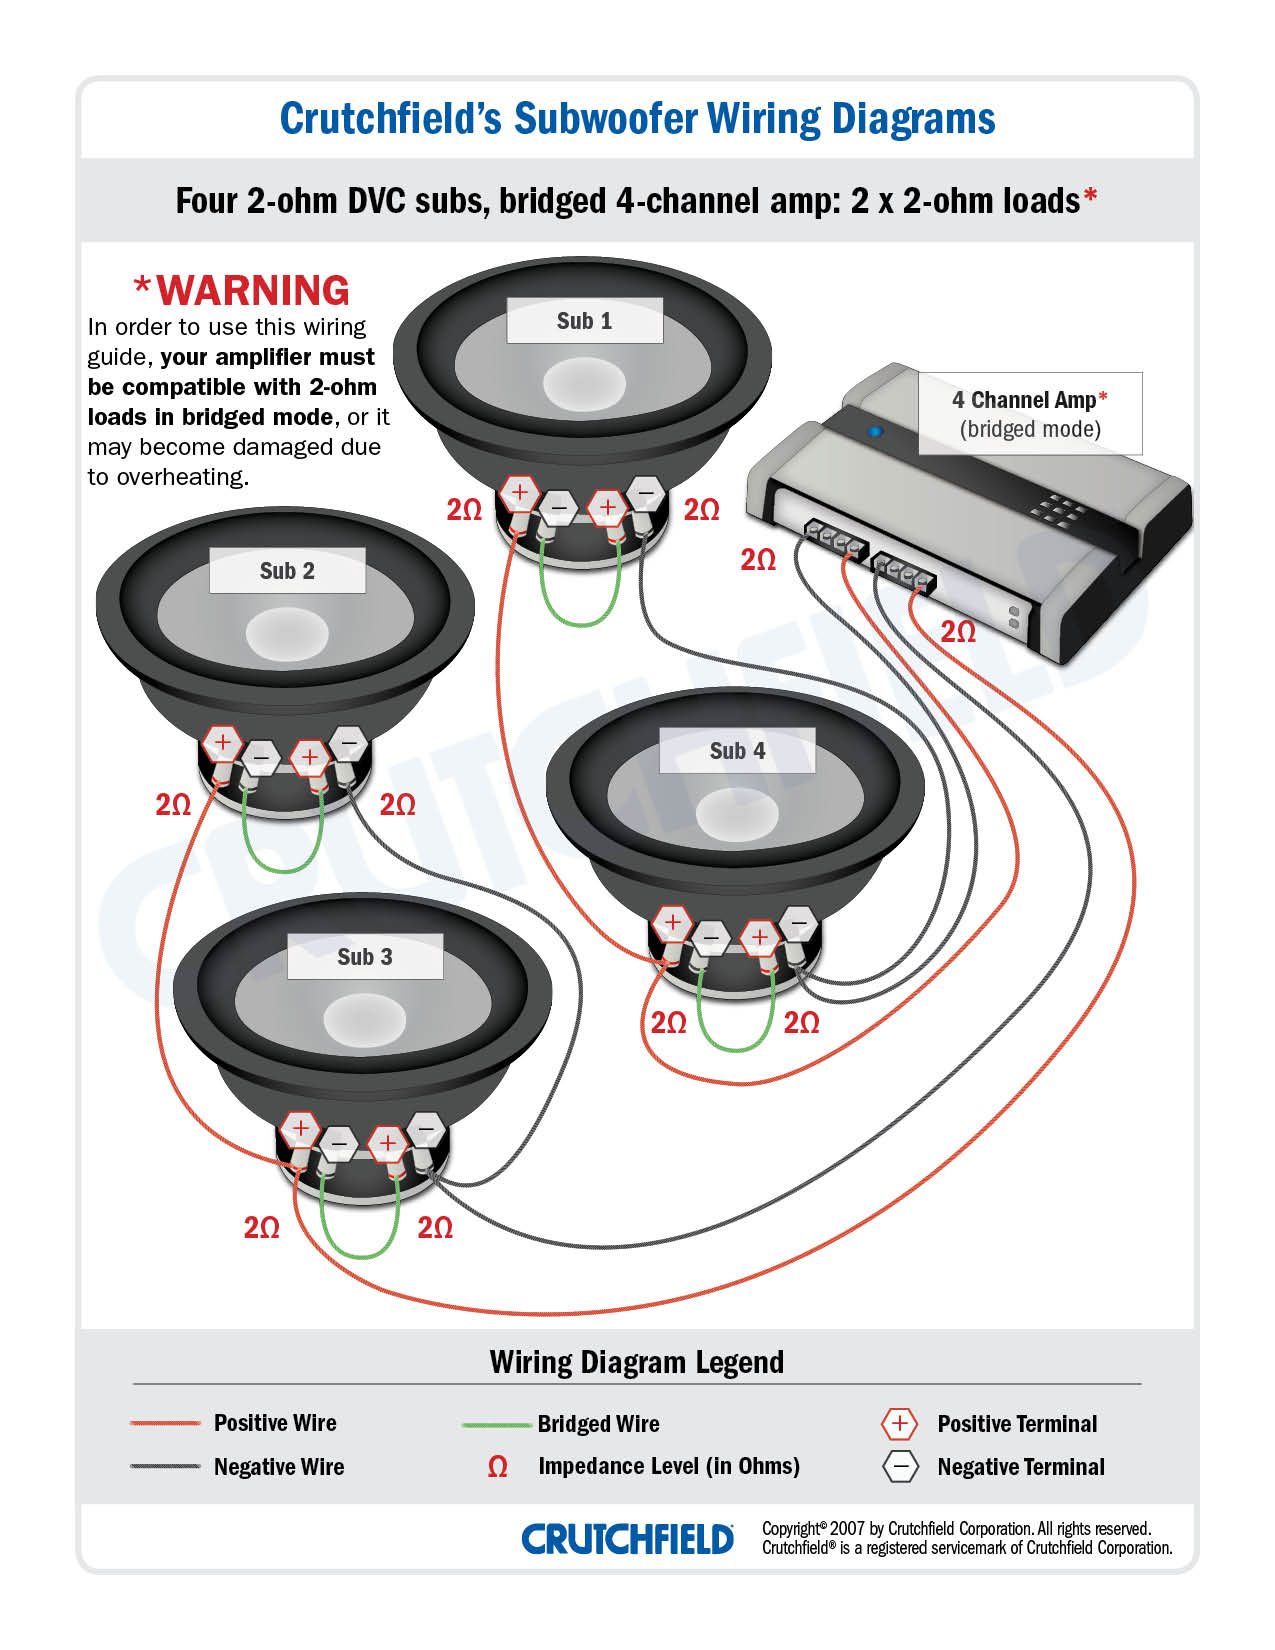 4 DVC 2 ohm 4 ch low imp wiring diagram for speakers connector for speakers \u2022 wiring vibe subwoofer wiring diagram at eliteediting.co